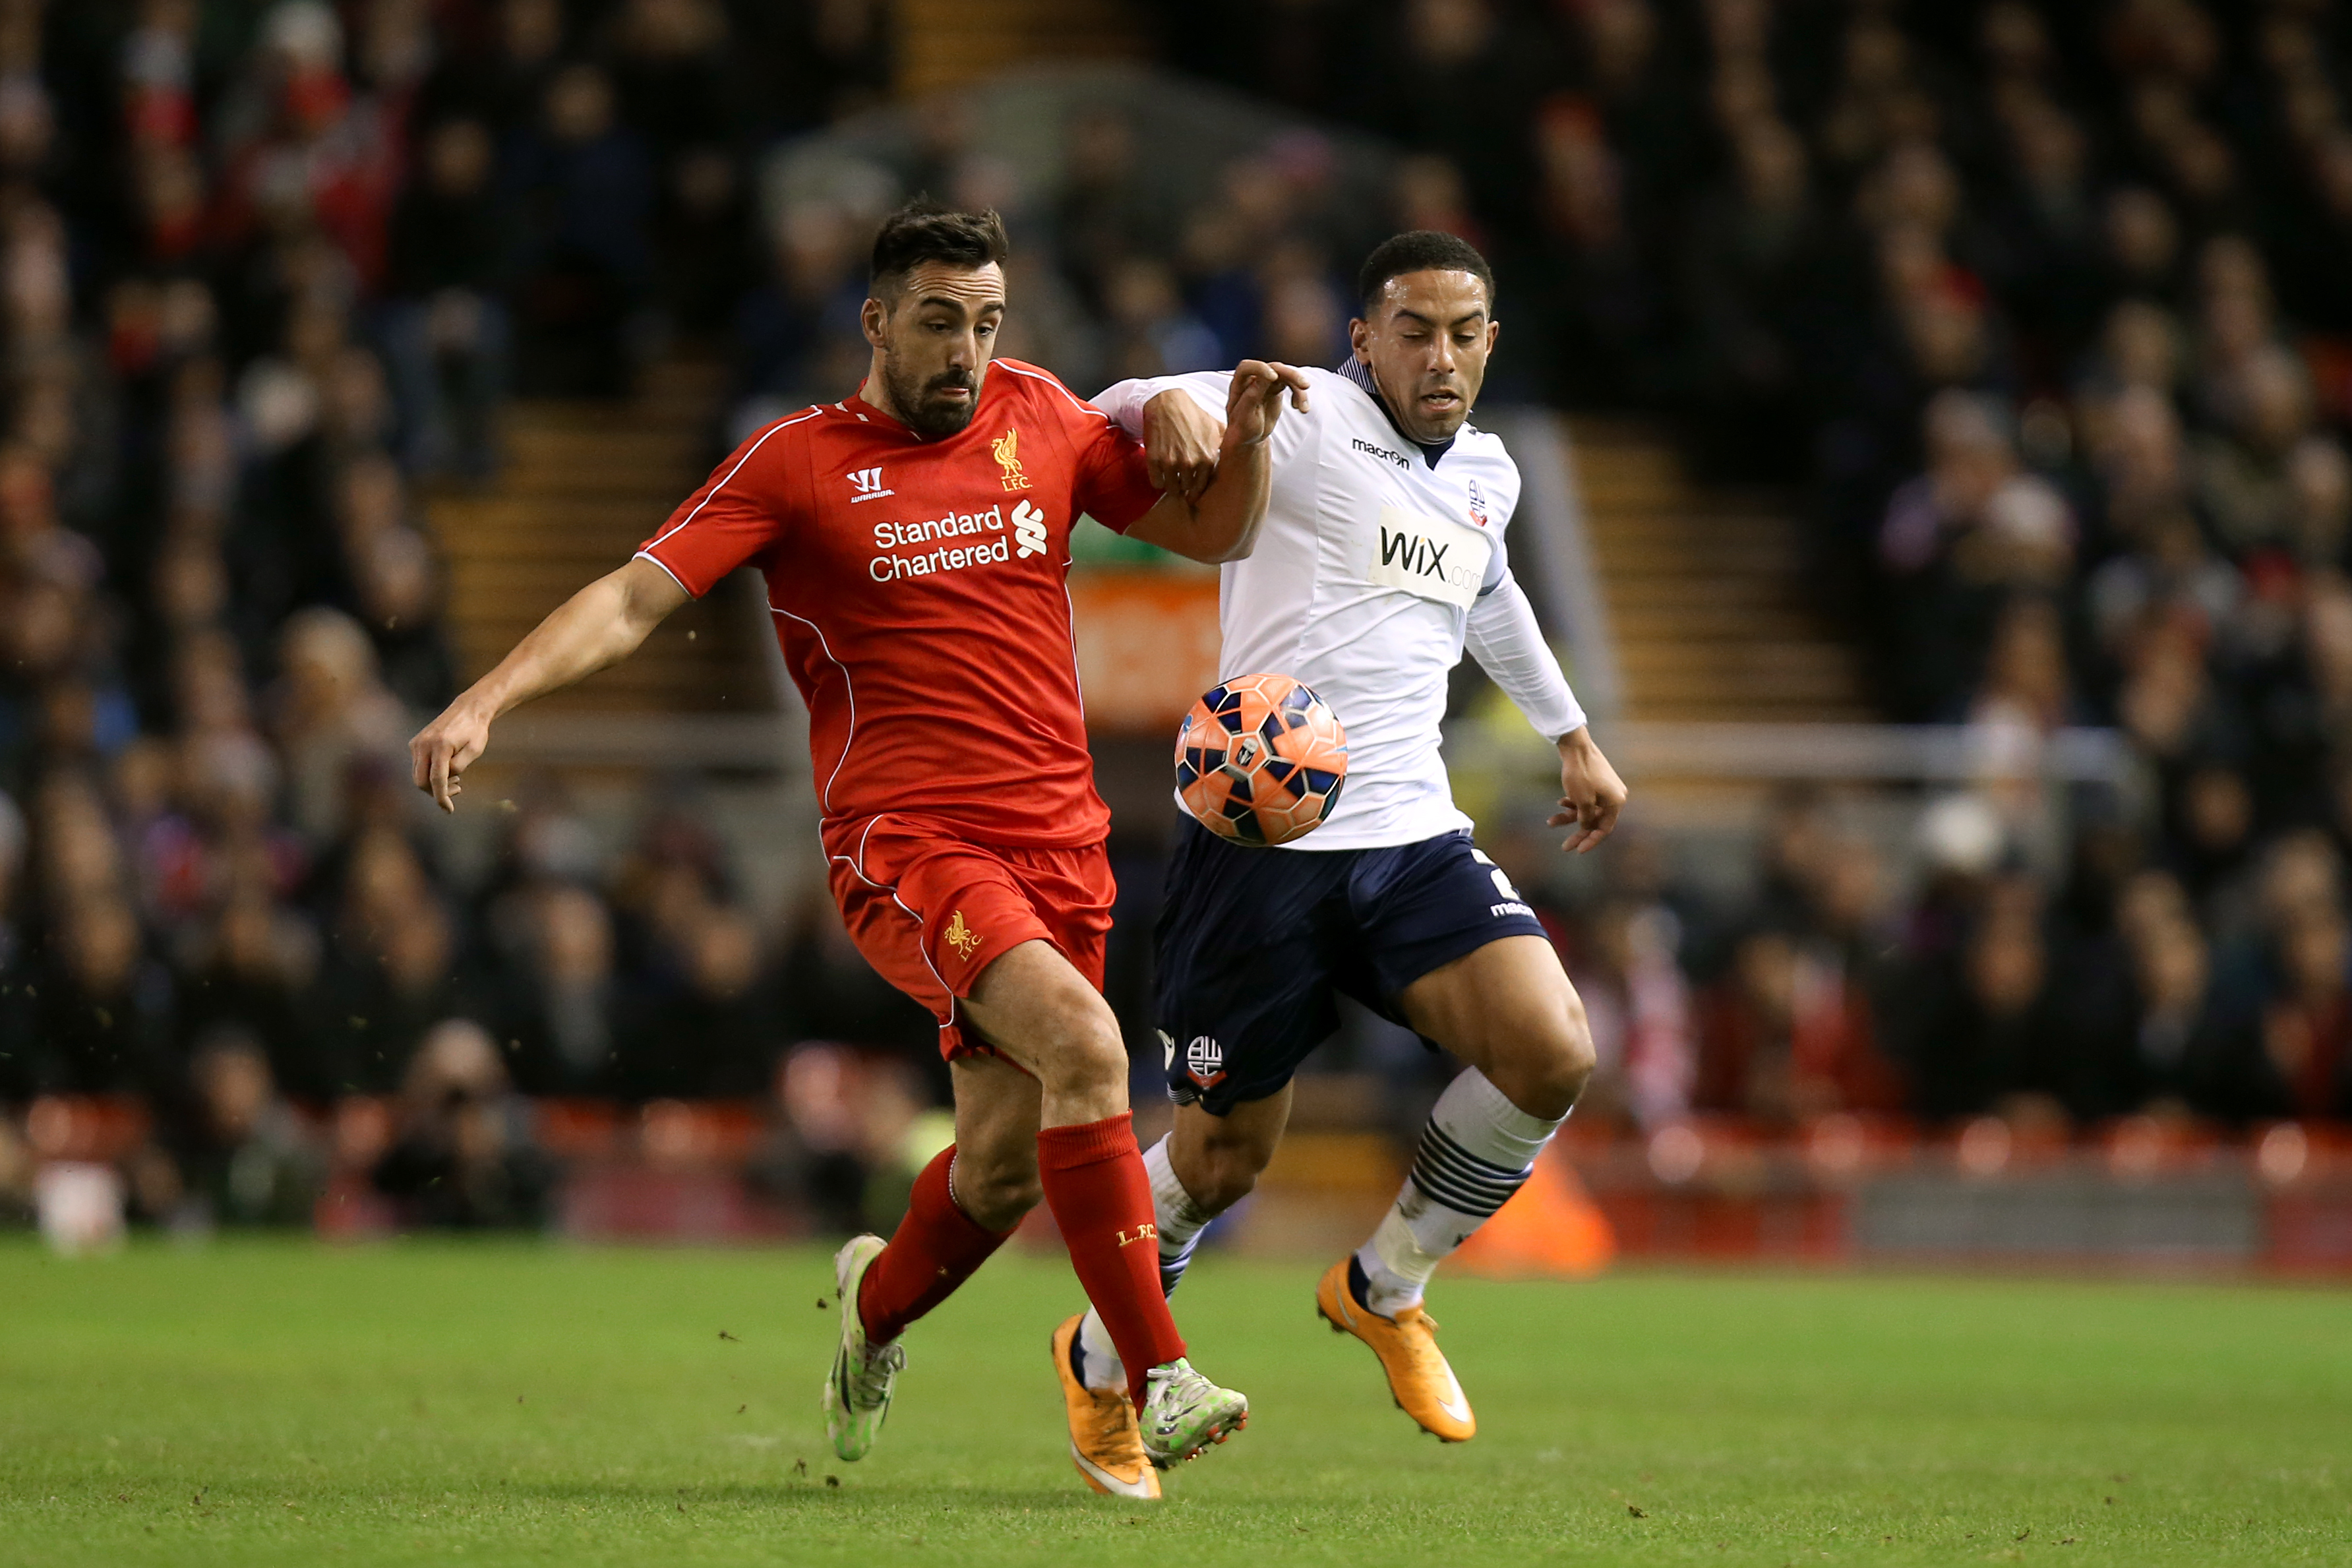 Enrique playing for Liverpool (Image Credit: PA)